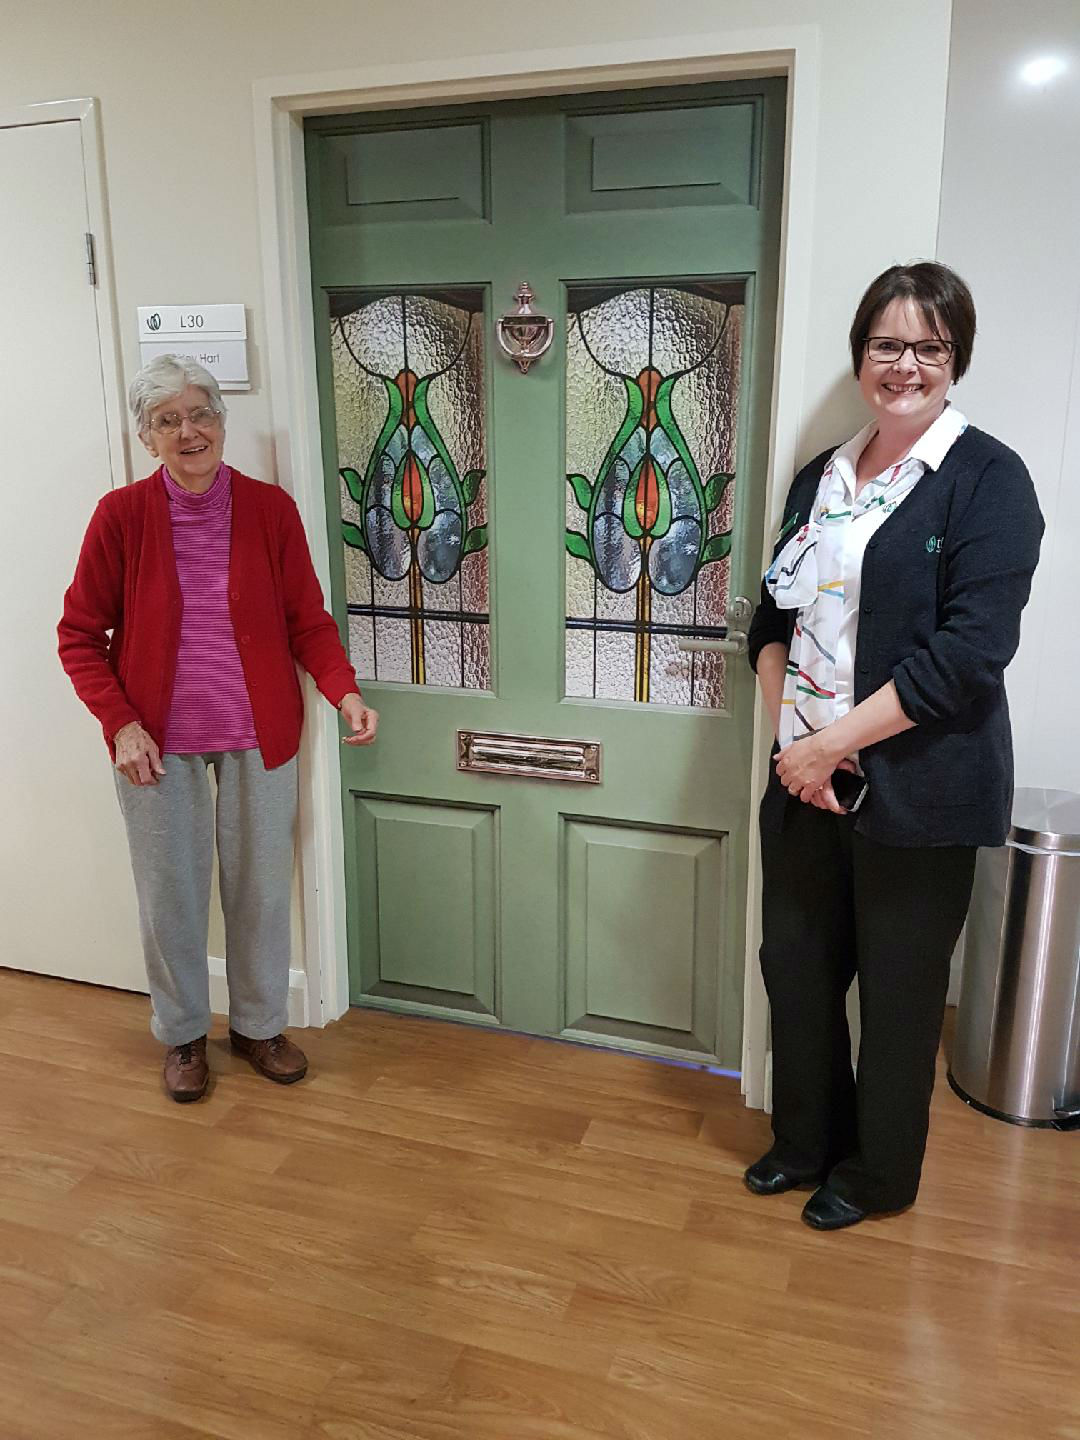 Sue Jones - Having fun at TLC Aged Care The Heights in Donvale, Victoria, Australia